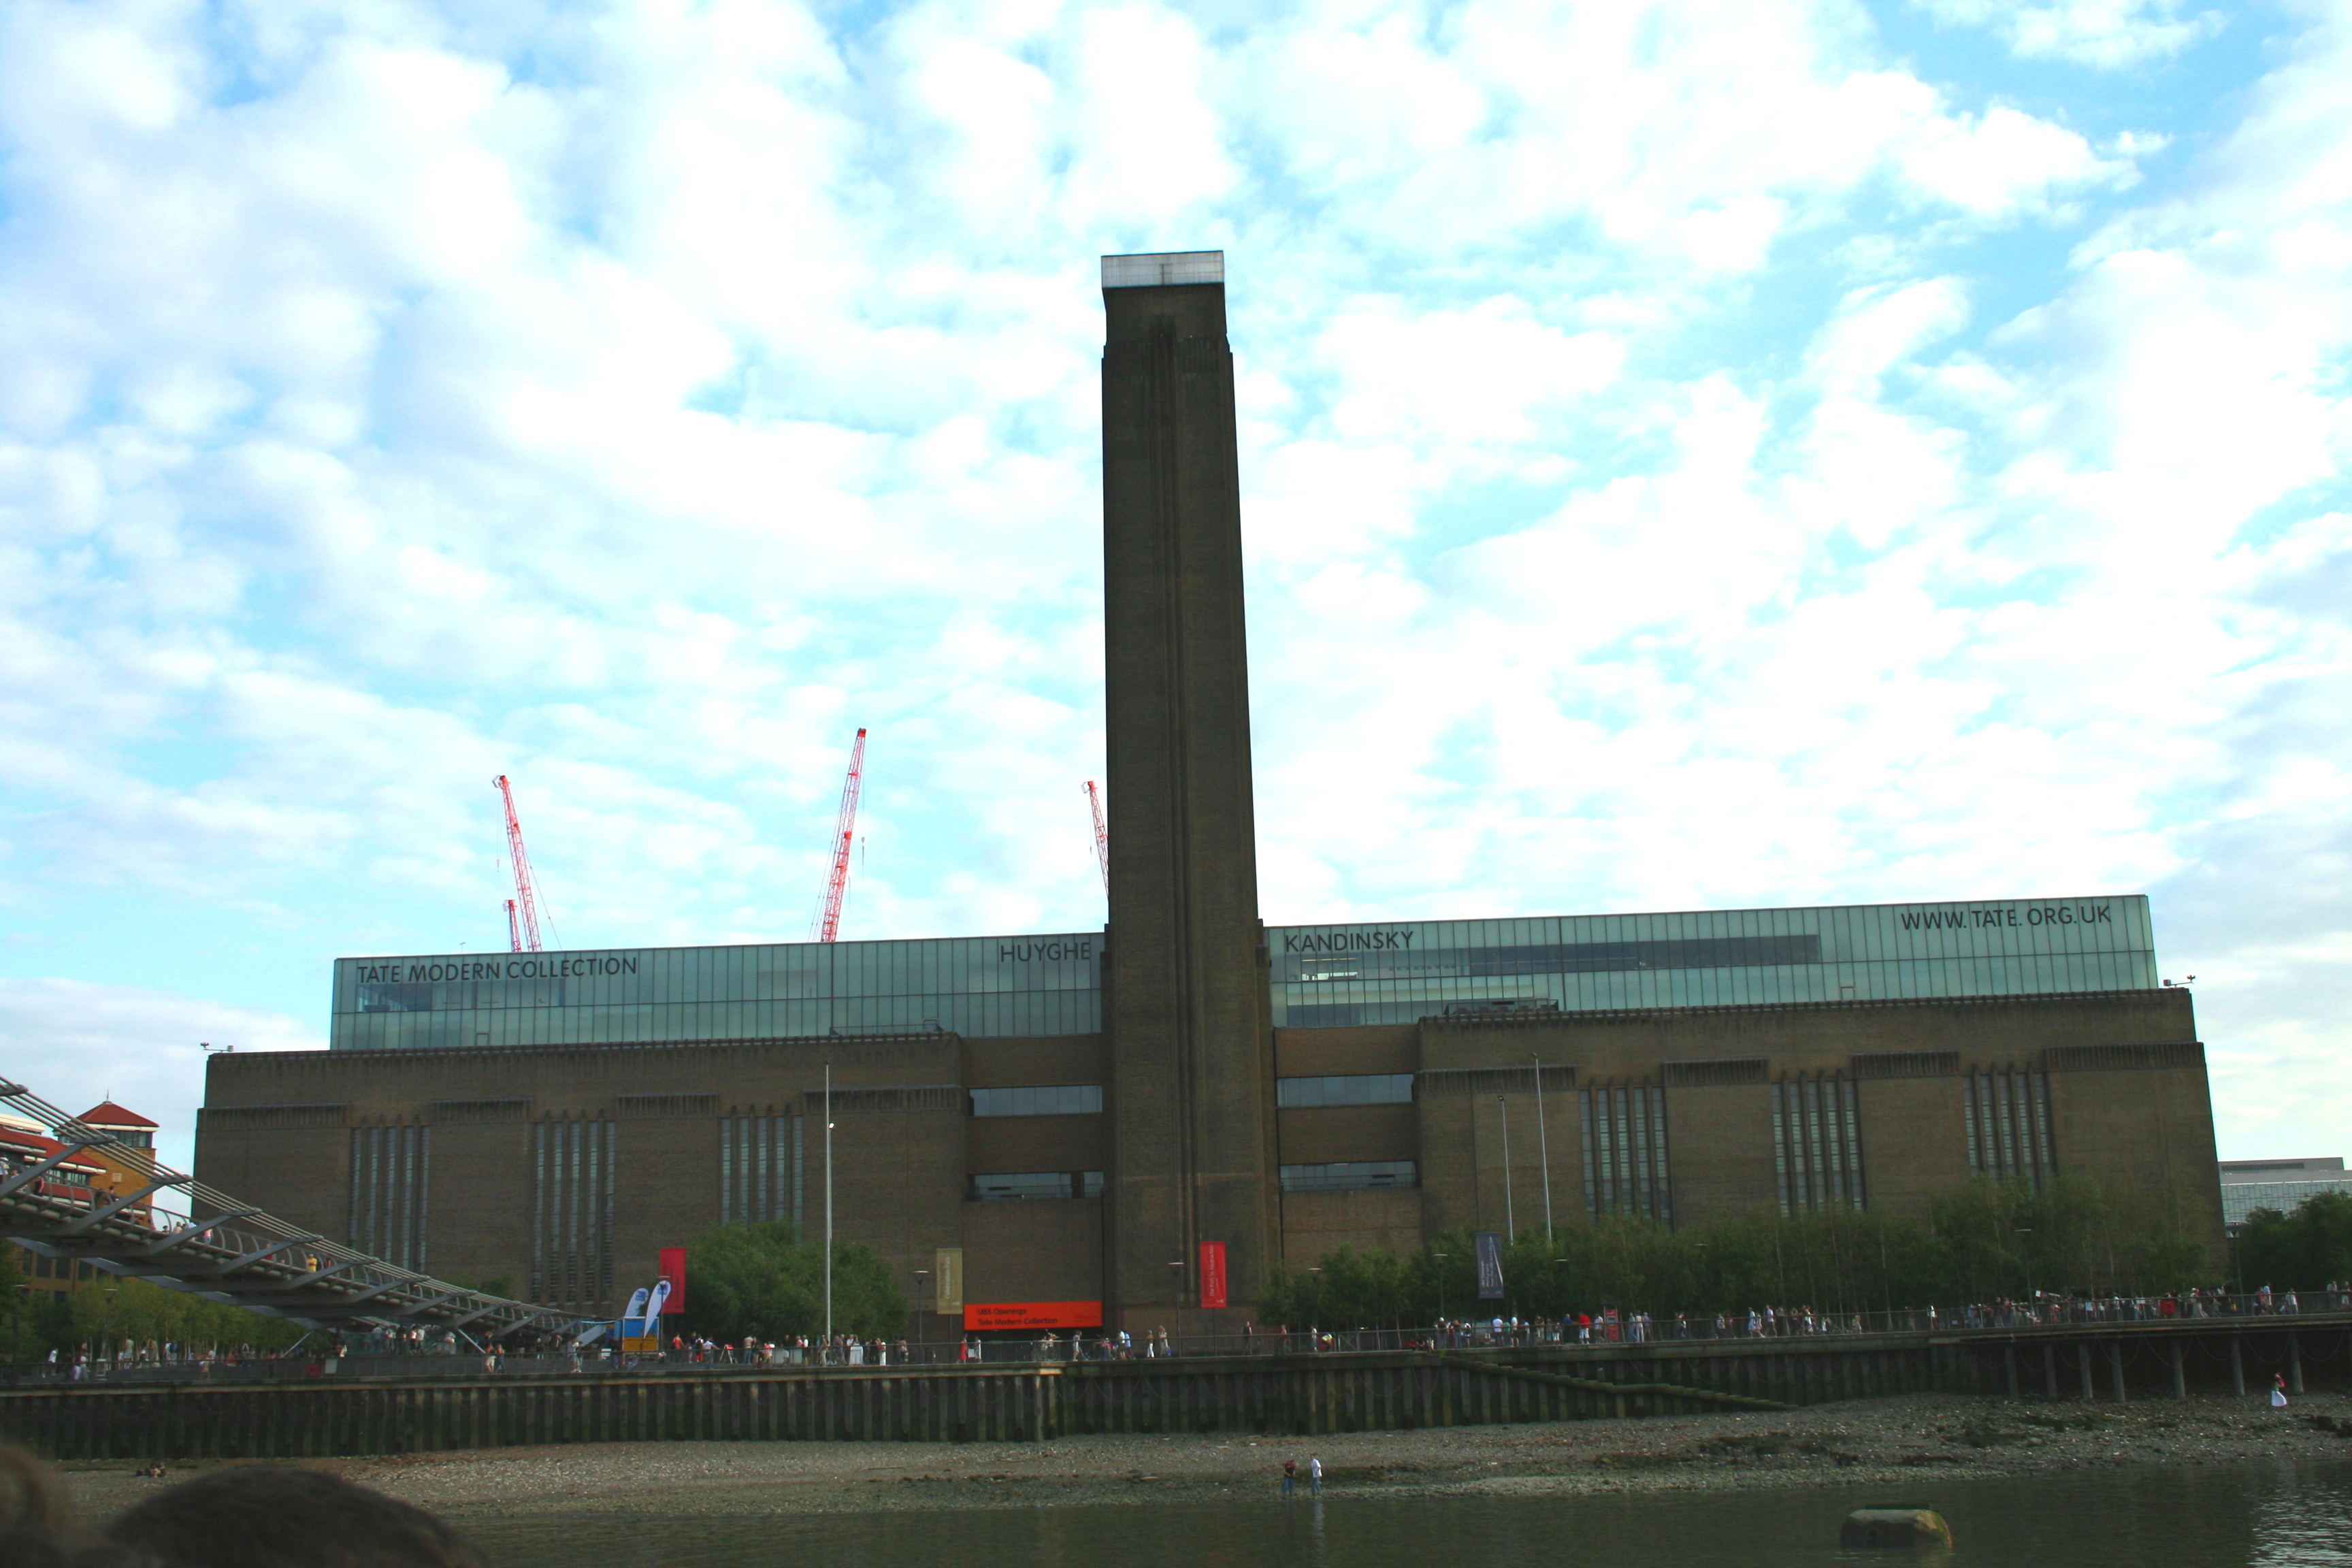 Depiction of Tate